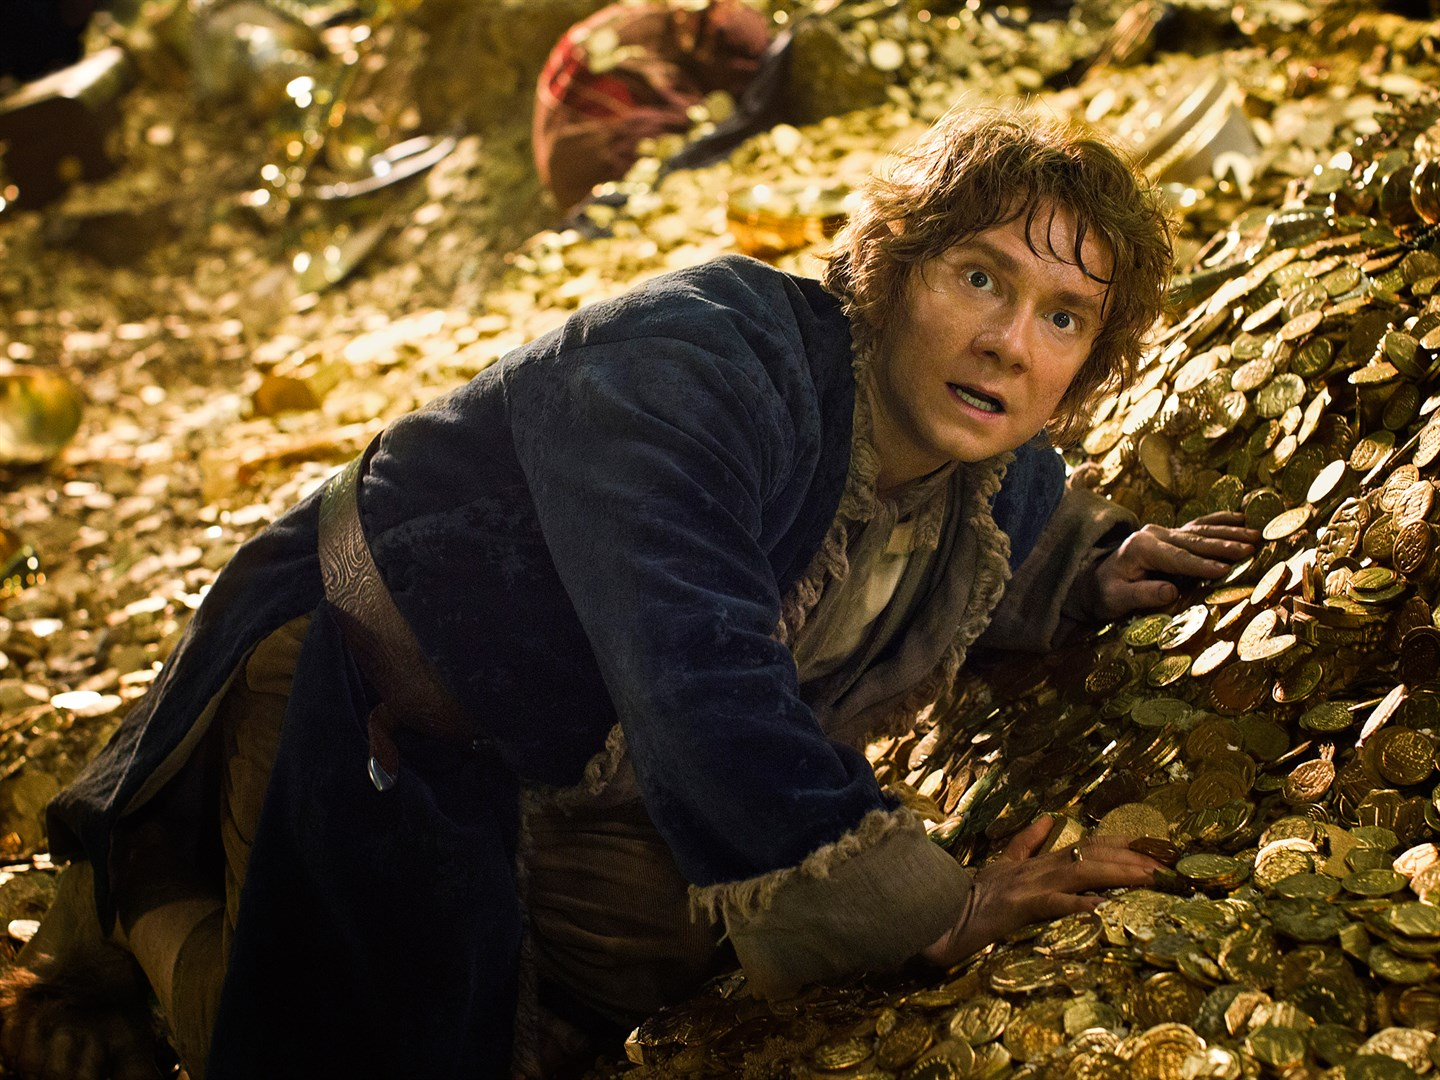 Buy The Hobbit: The Desolation of Smaug - Microsoft Store